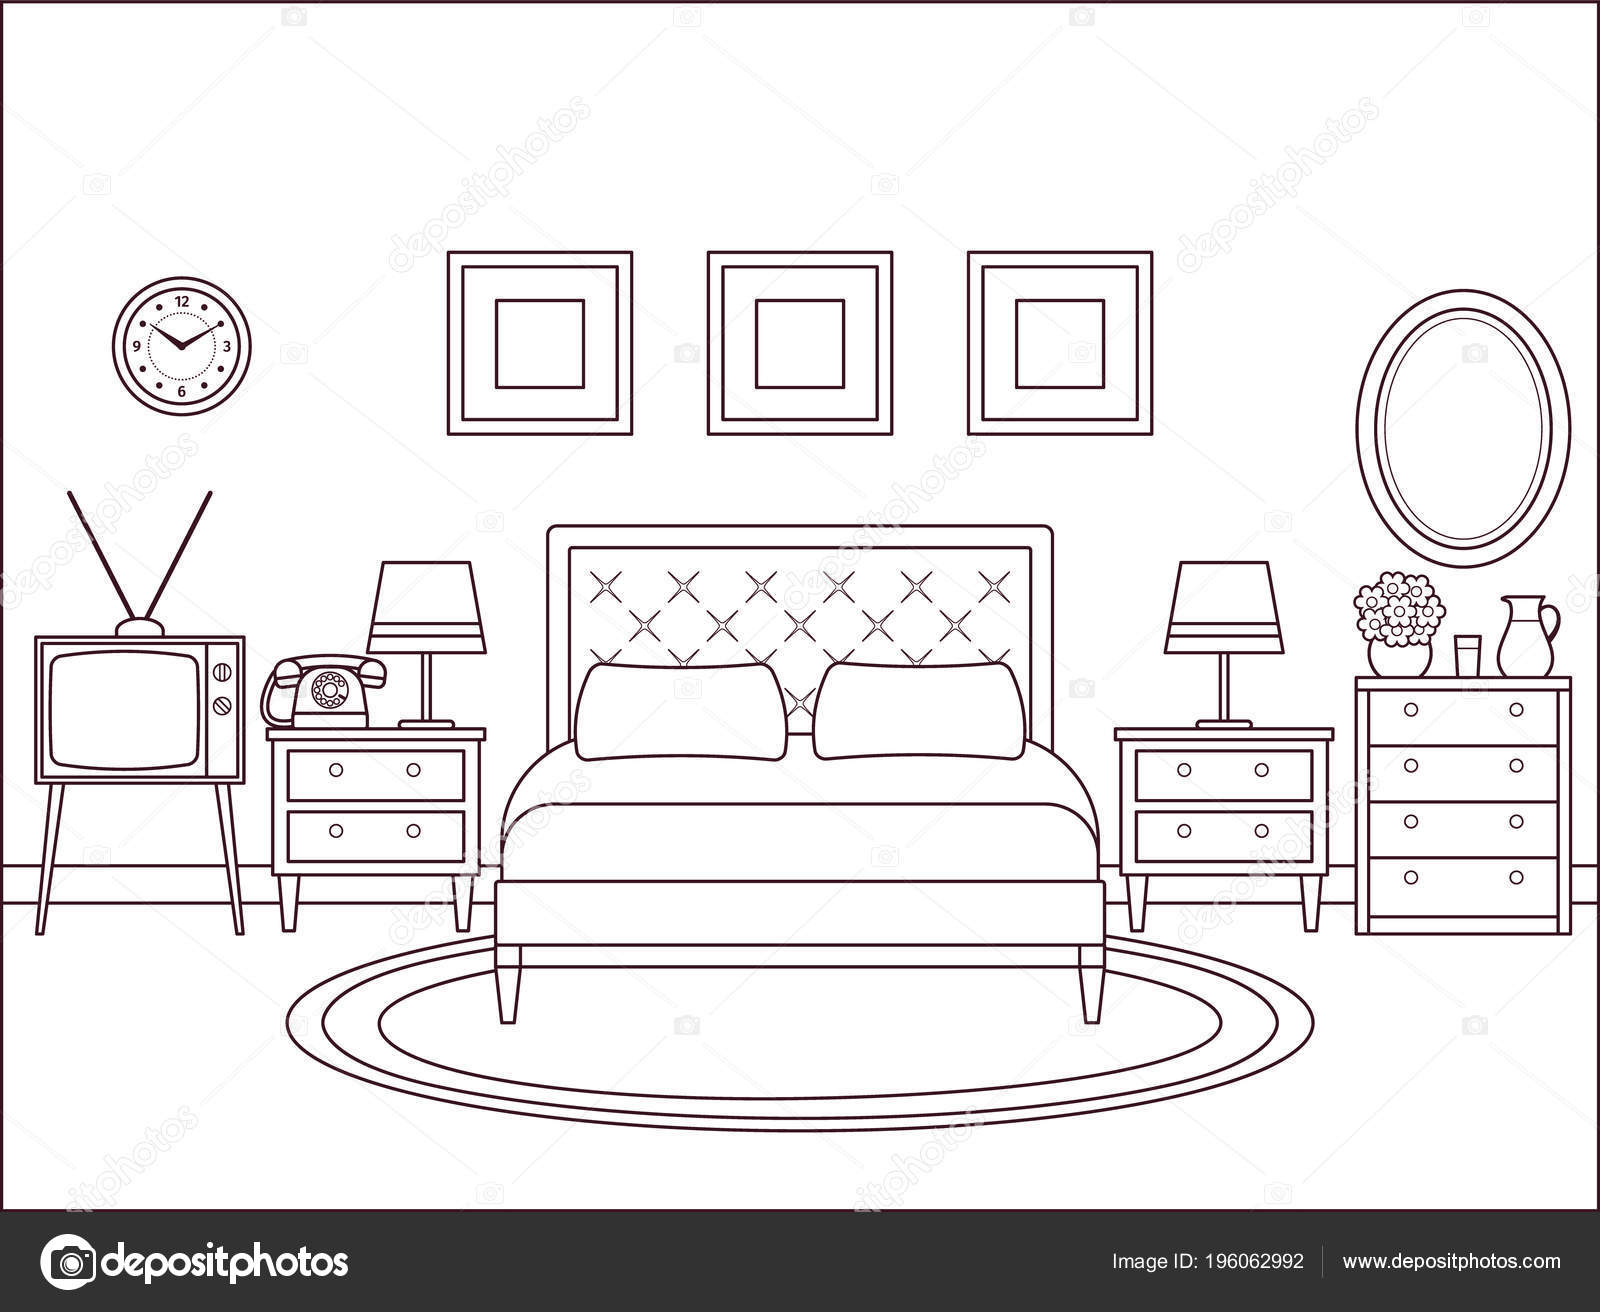 Bedroom Interior Hotel Retro Room Bed Vector Outline Home